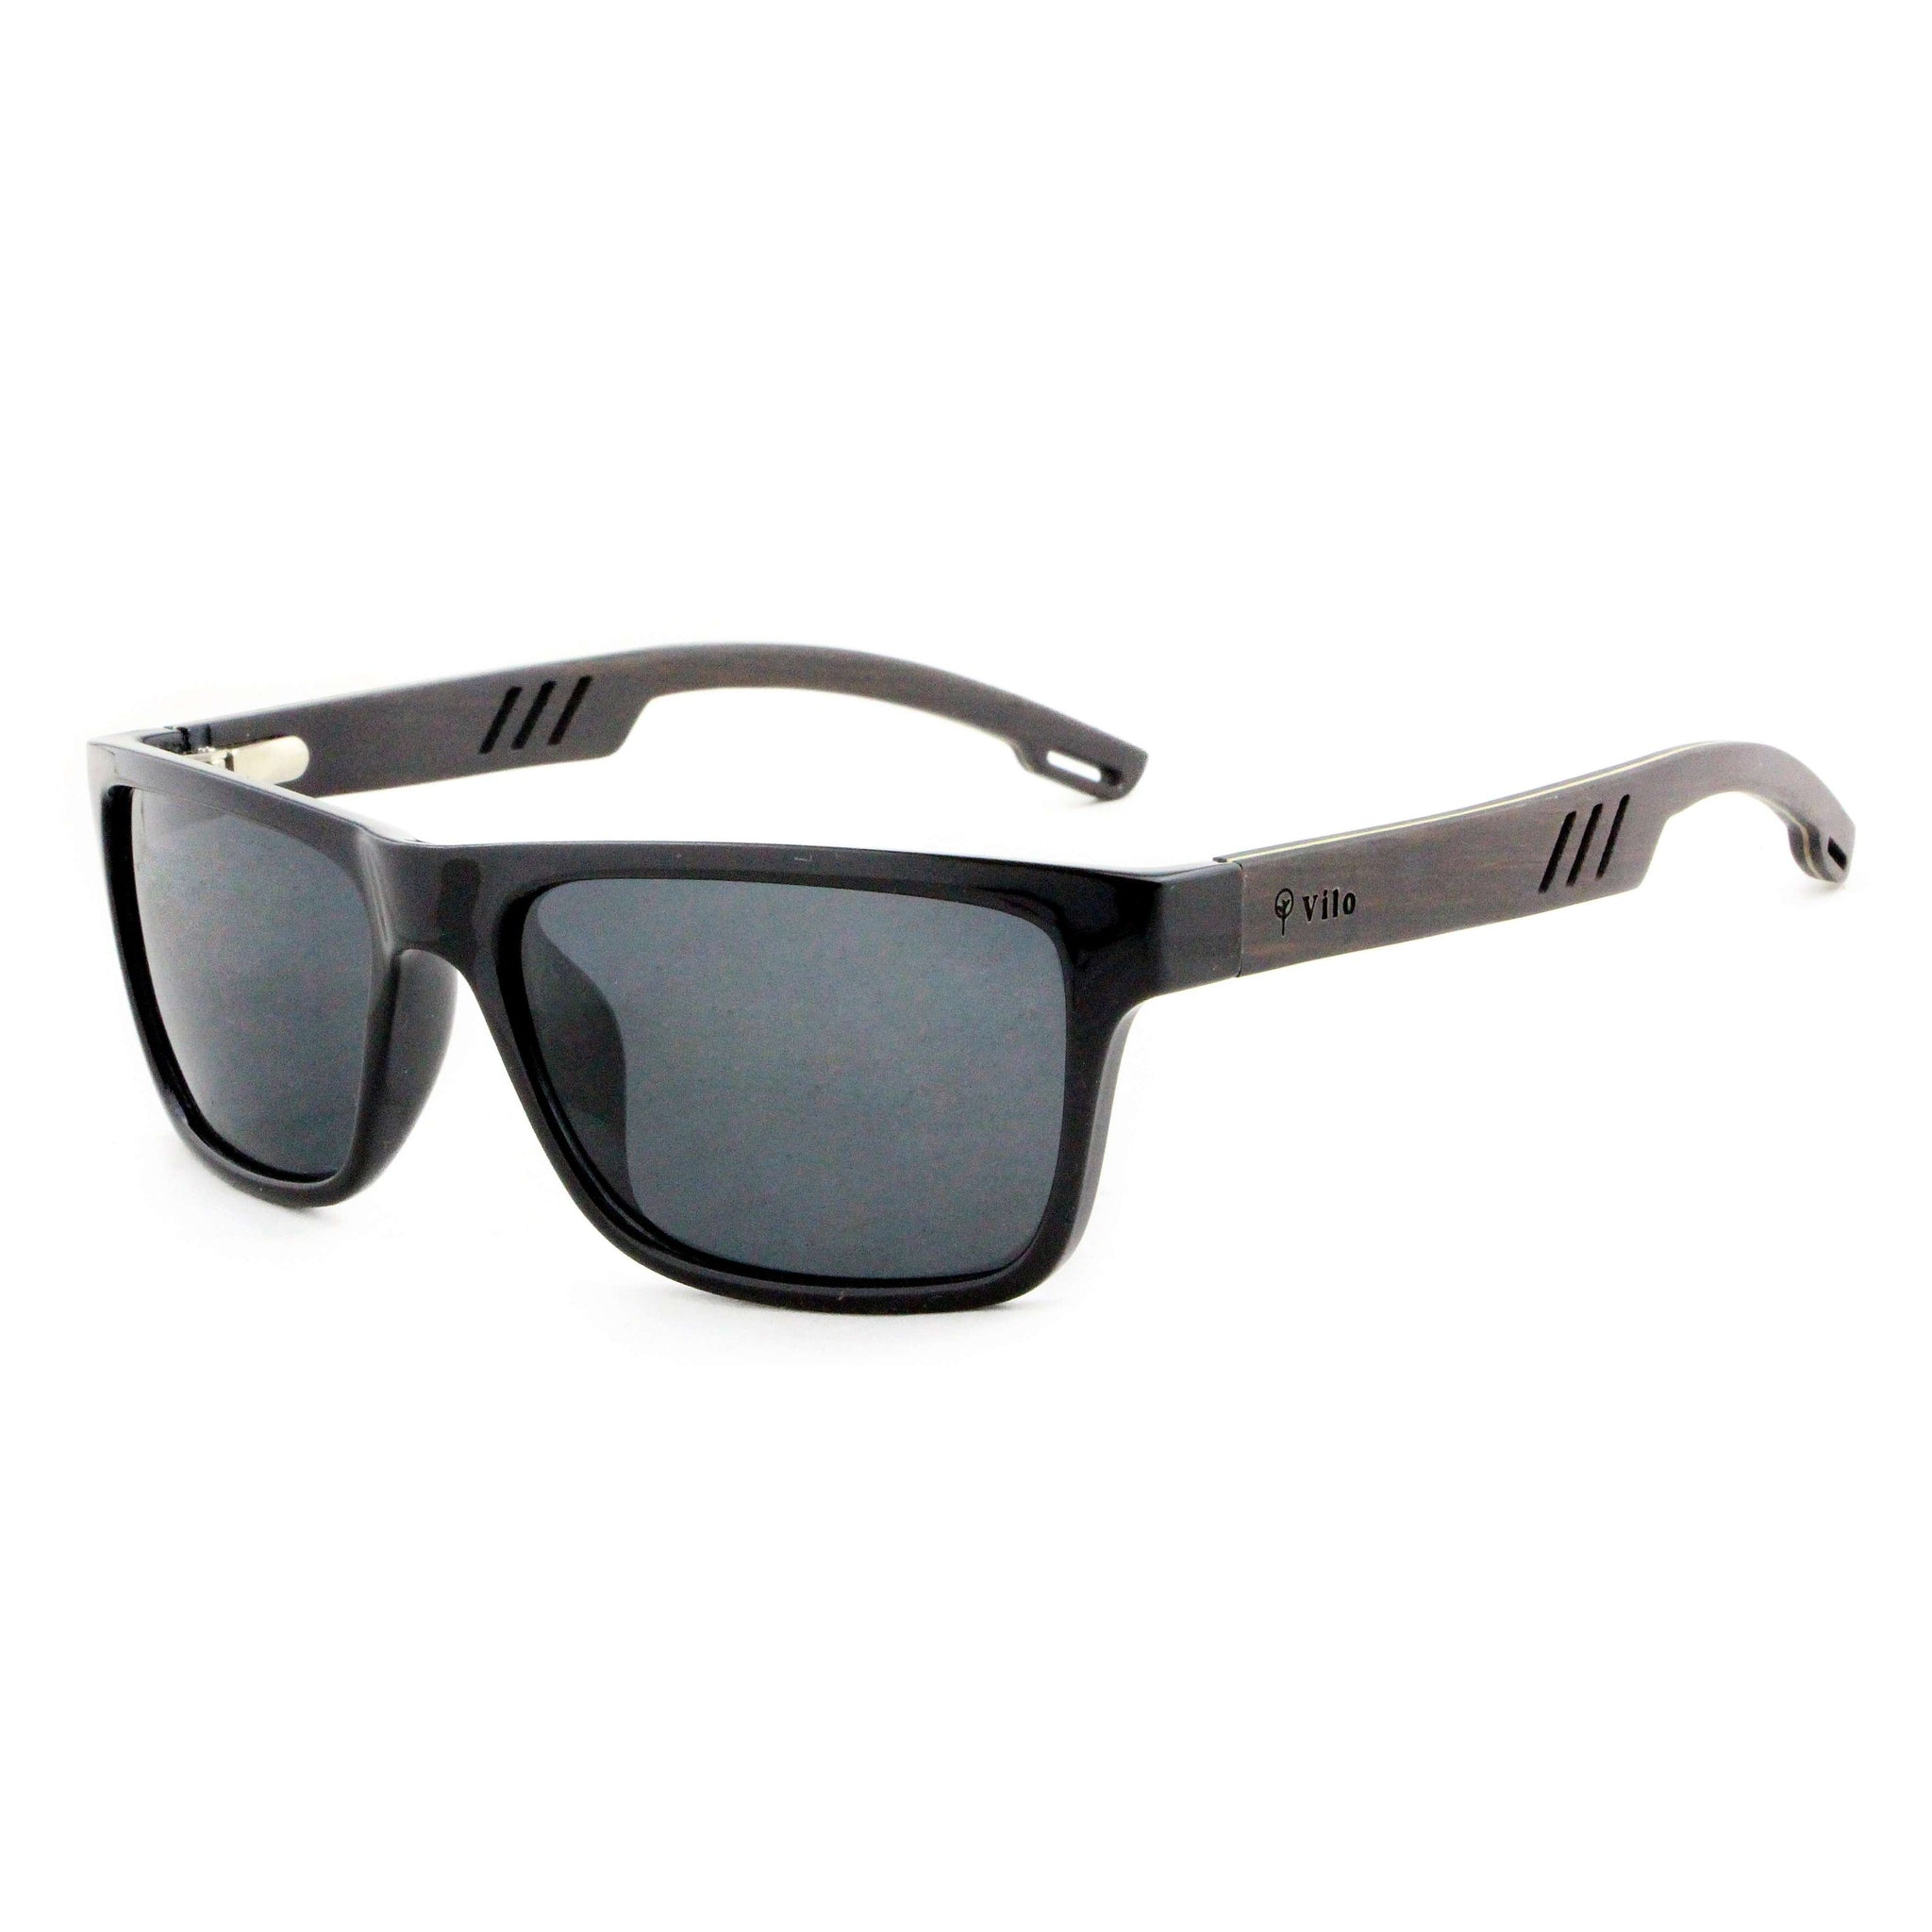 Vilo Wood Sunglasses - Velocity: